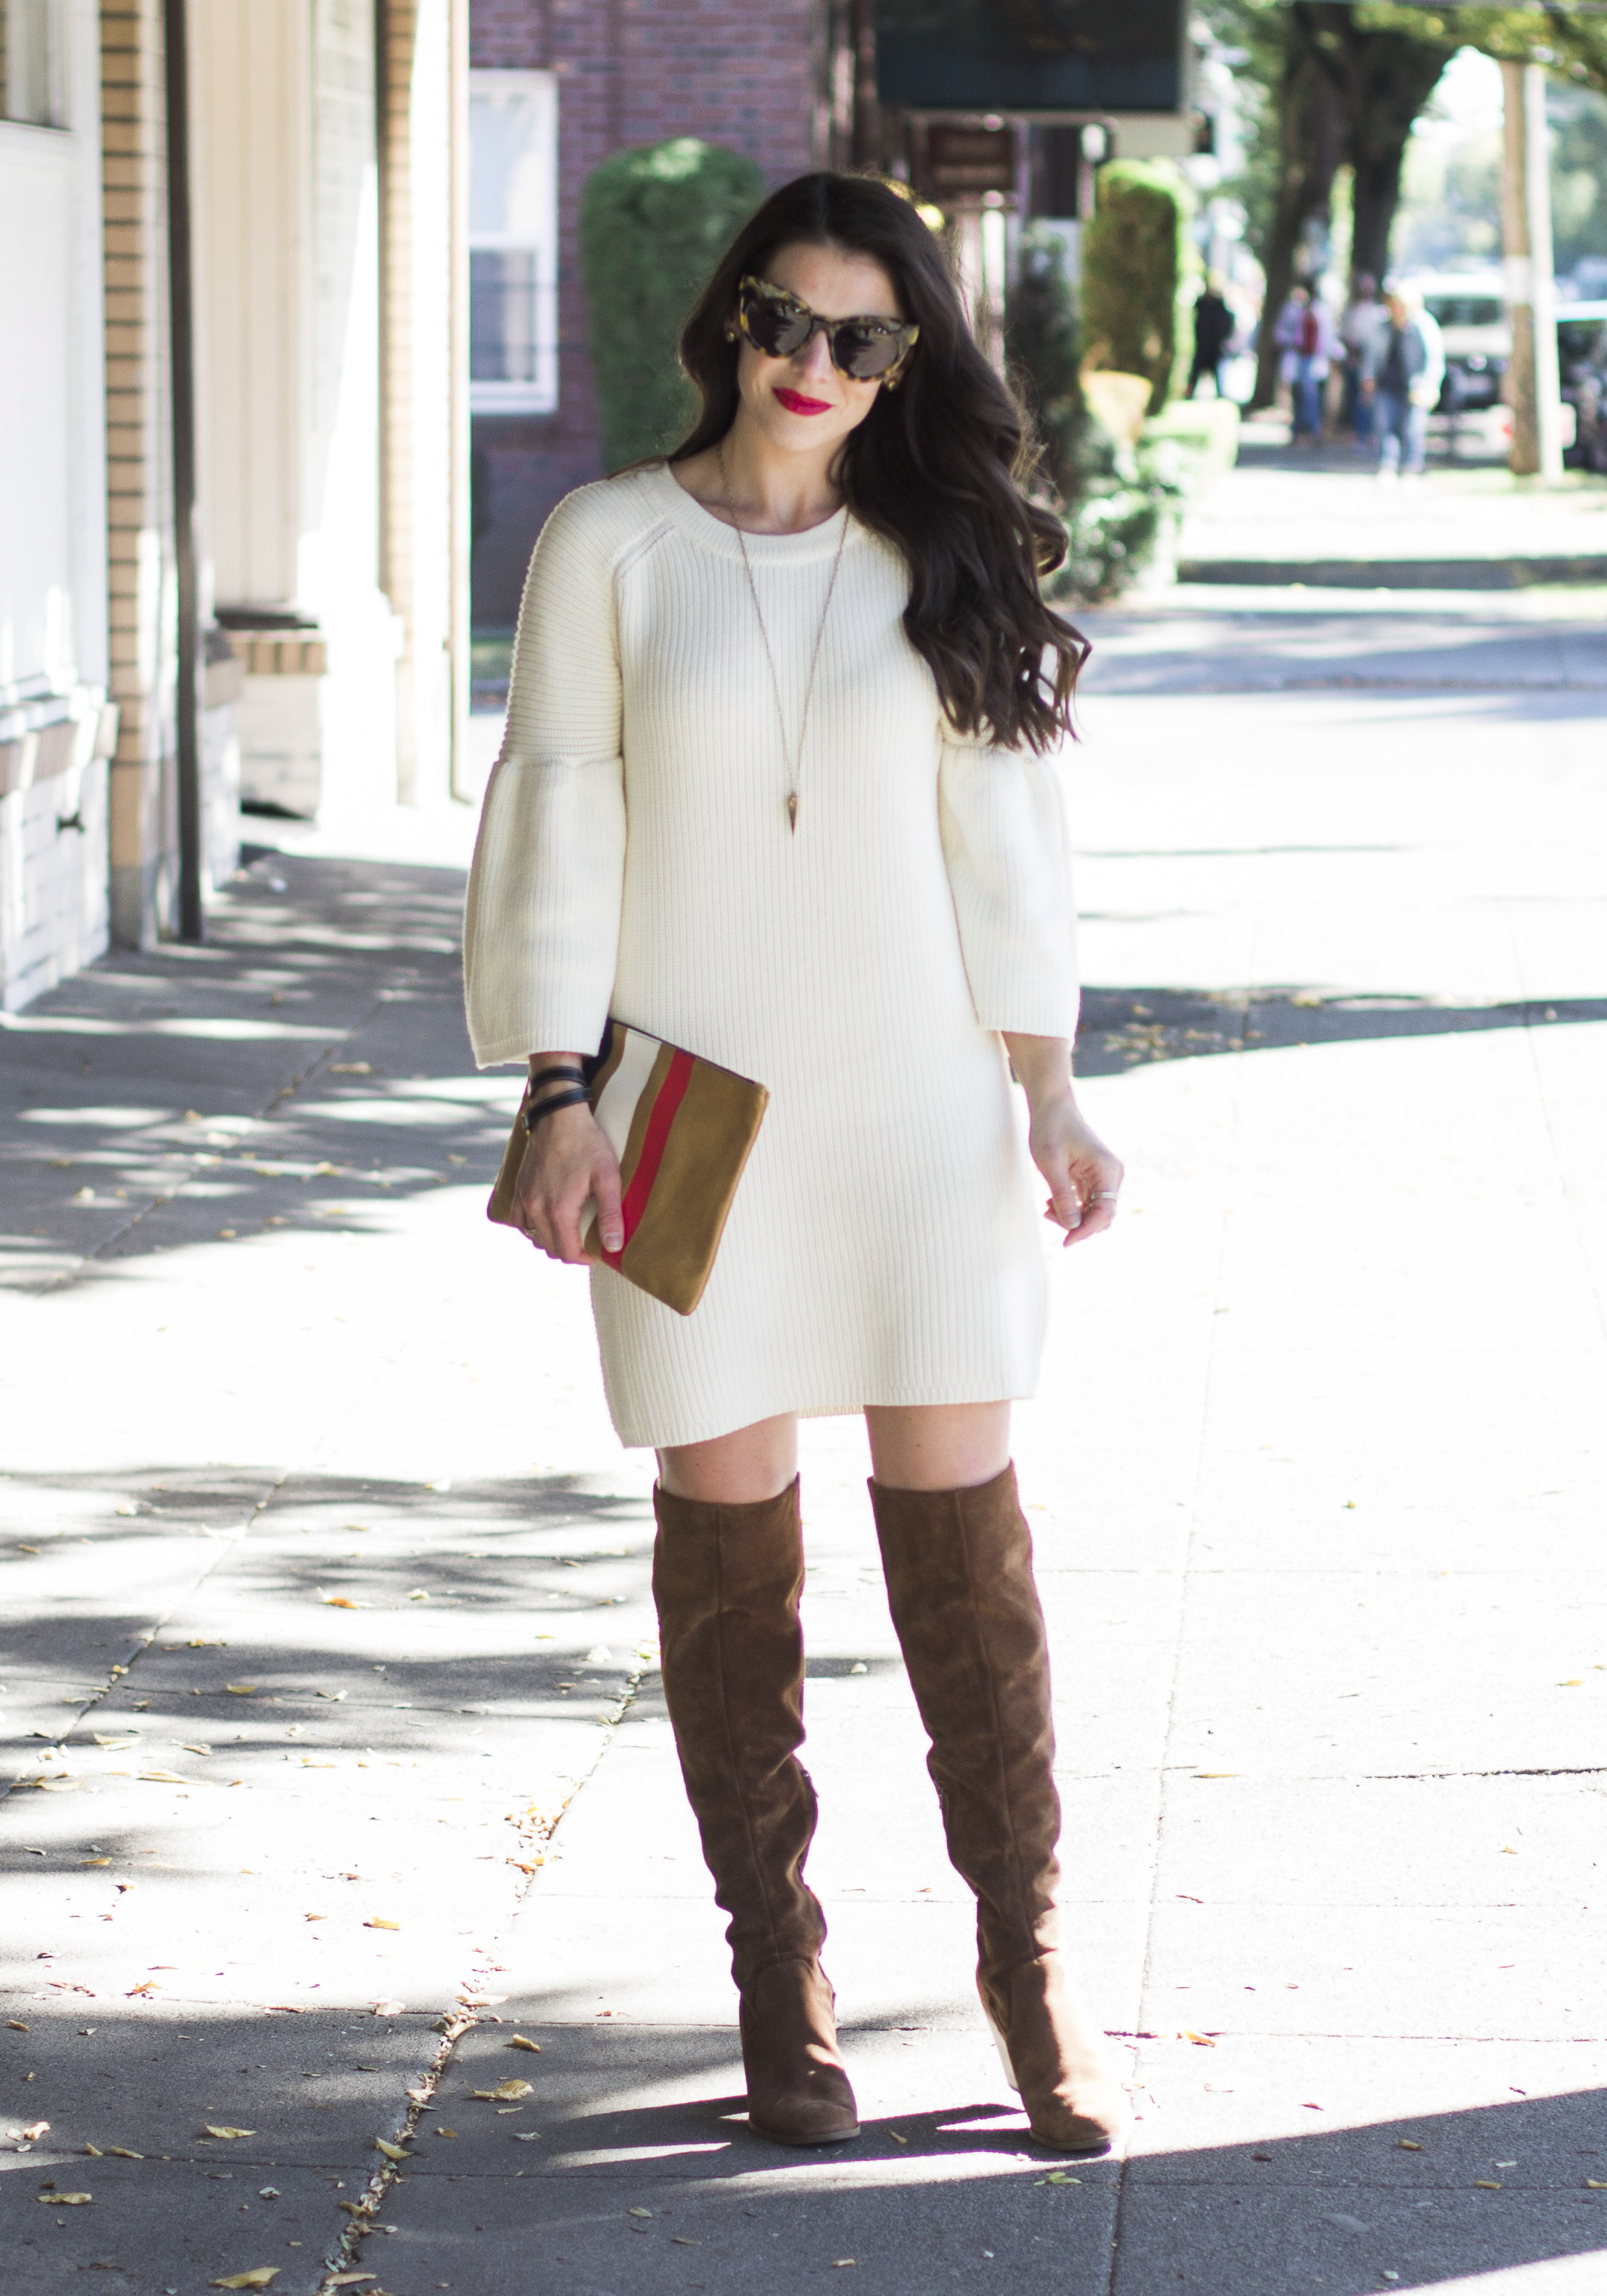 Cute over the knee boot outfits, outfit ideas for fall, sweater dress with bell sleeves and Steve Madden Eternul OTK boots.